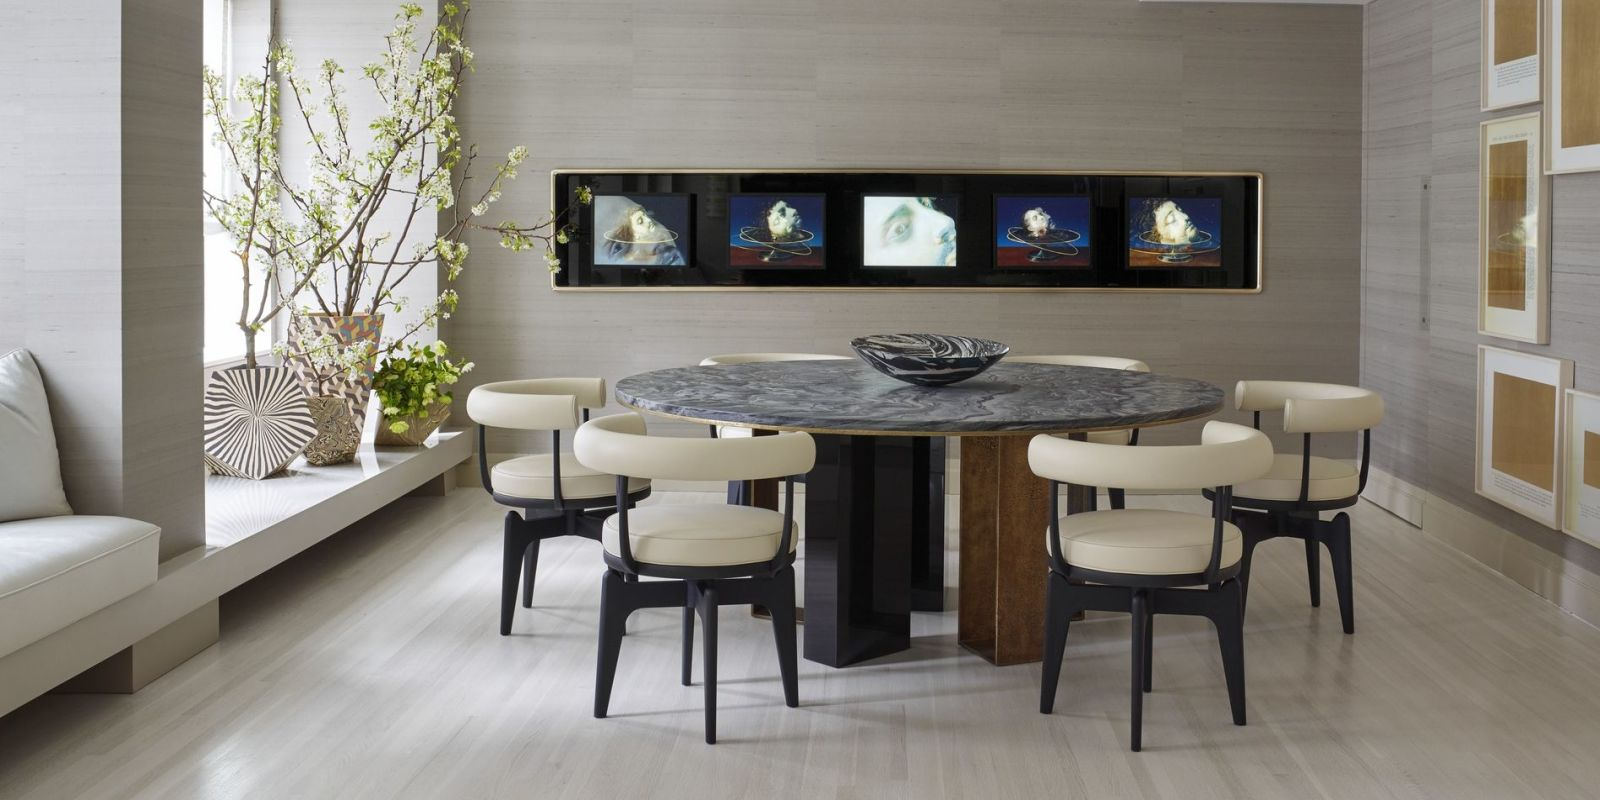 25 modern dining room decorating ideas contemporary for Dining room styles 2016